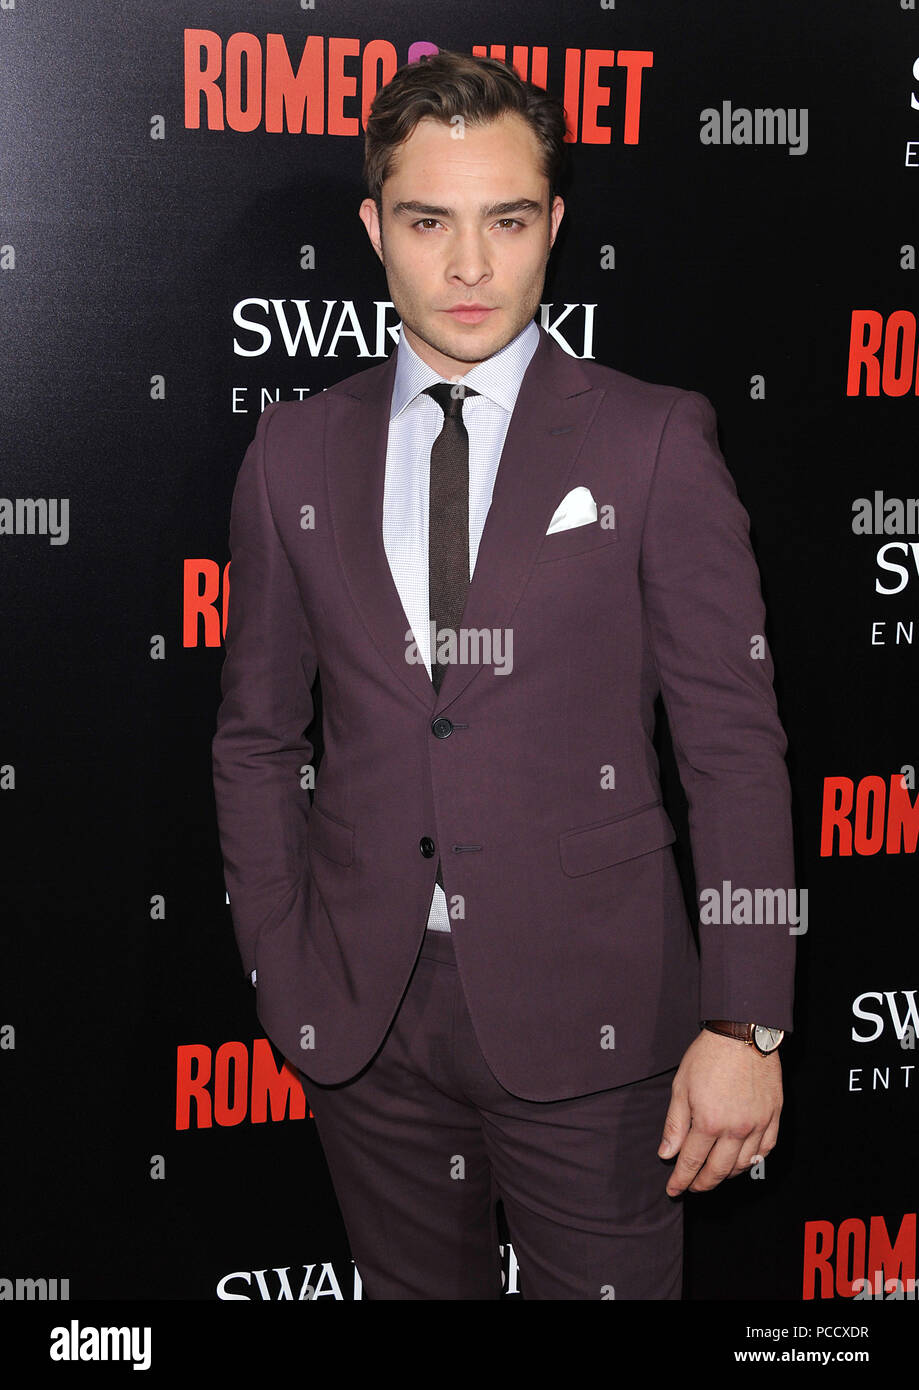 Ed Westwick  arriving at the Romeo & Juliet Premiere at the Arclight Theatre In Los Angeles.Ed Westwick  ------------- Red Carpet Event, Vertical, USA, Film Industry, Celebrities,  Photography, Bestof, Arts Culture and Entertainment, Topix Celebrities fashion /  Vertical, Best of, Event in Hollywood Life - California,  Red Carpet and backstage, USA, Film Industry, Celebrities,  movie celebrities, TV celebrities, Music celebrities, Photography, Bestof, Arts Culture and Entertainment,  Topix, Three Quarters, vertical, one person,, from the year , 2013, inquiry tsuni@Gamma-USA.com - Stock Image